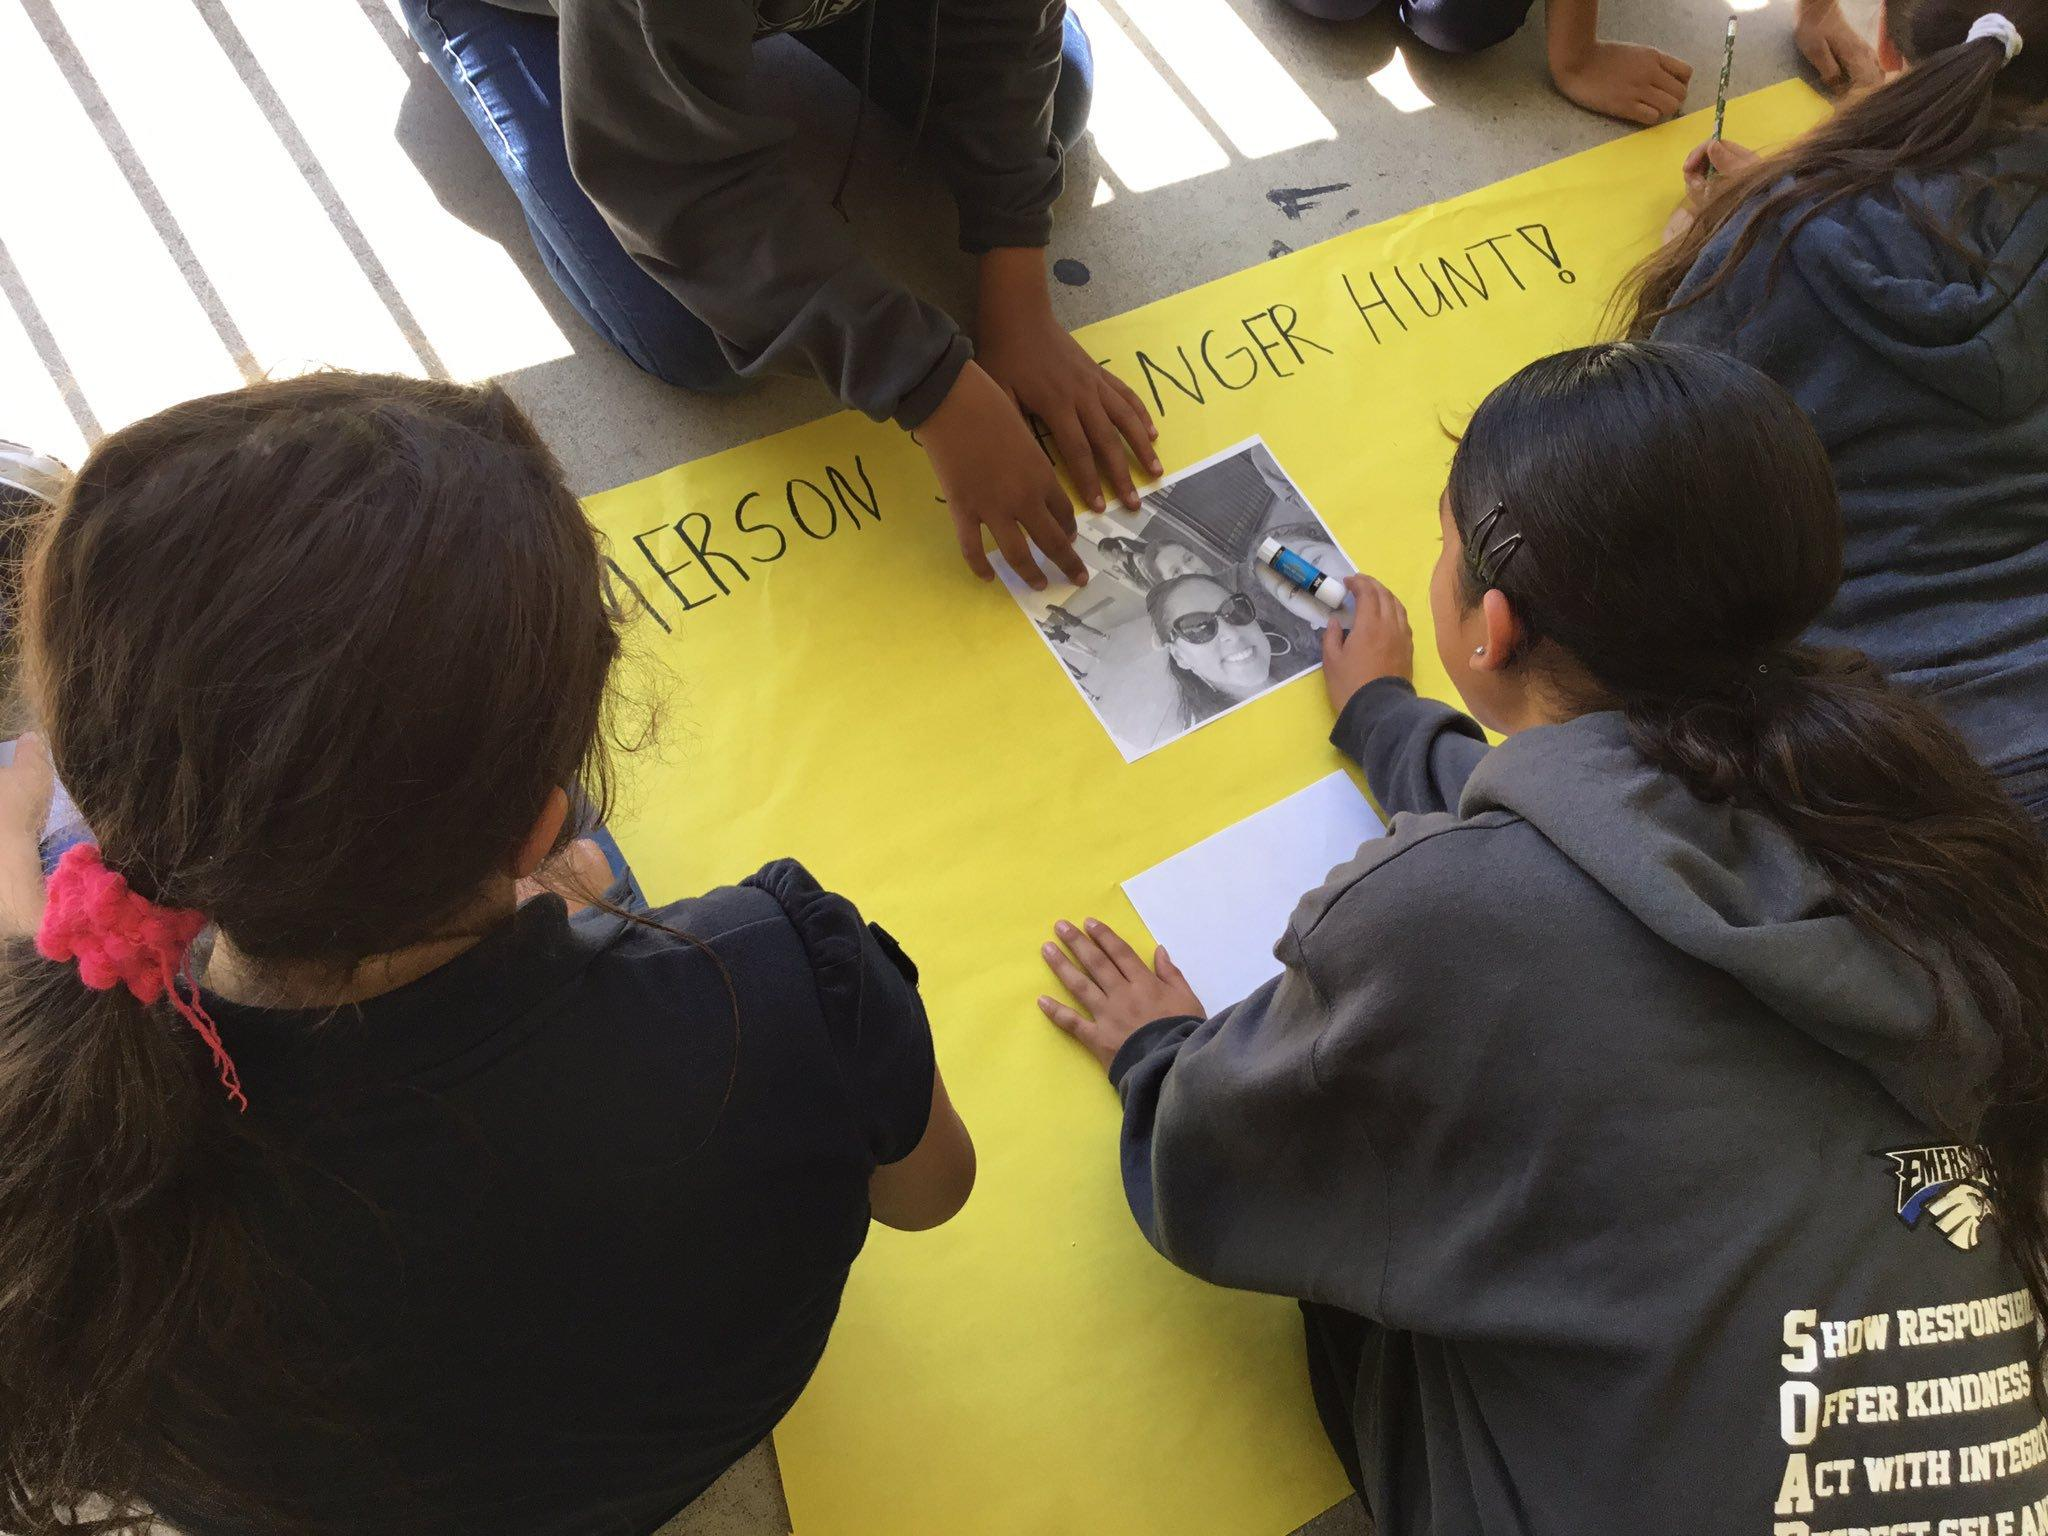 Emerson students are focused on AVID Strategies for Success, they made posters of self-portraits right after they practiced their professional handshakes. #THISISAVID #Proud2bePUSD #AVID #EmersonEAGLES